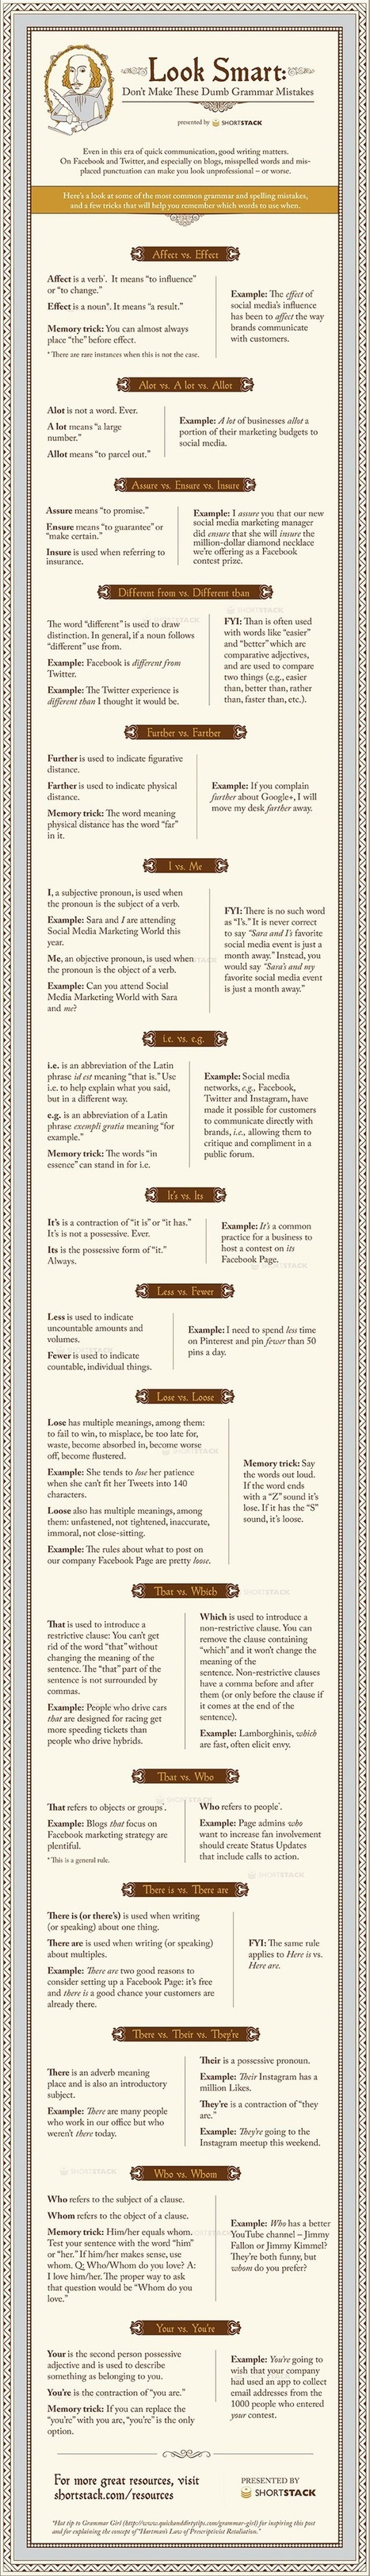 Look Smart: Don't Make these Dumb Writing Mistakes! - SociallyStacked | CGS Literacy, Learning and ICT | Scoop.it